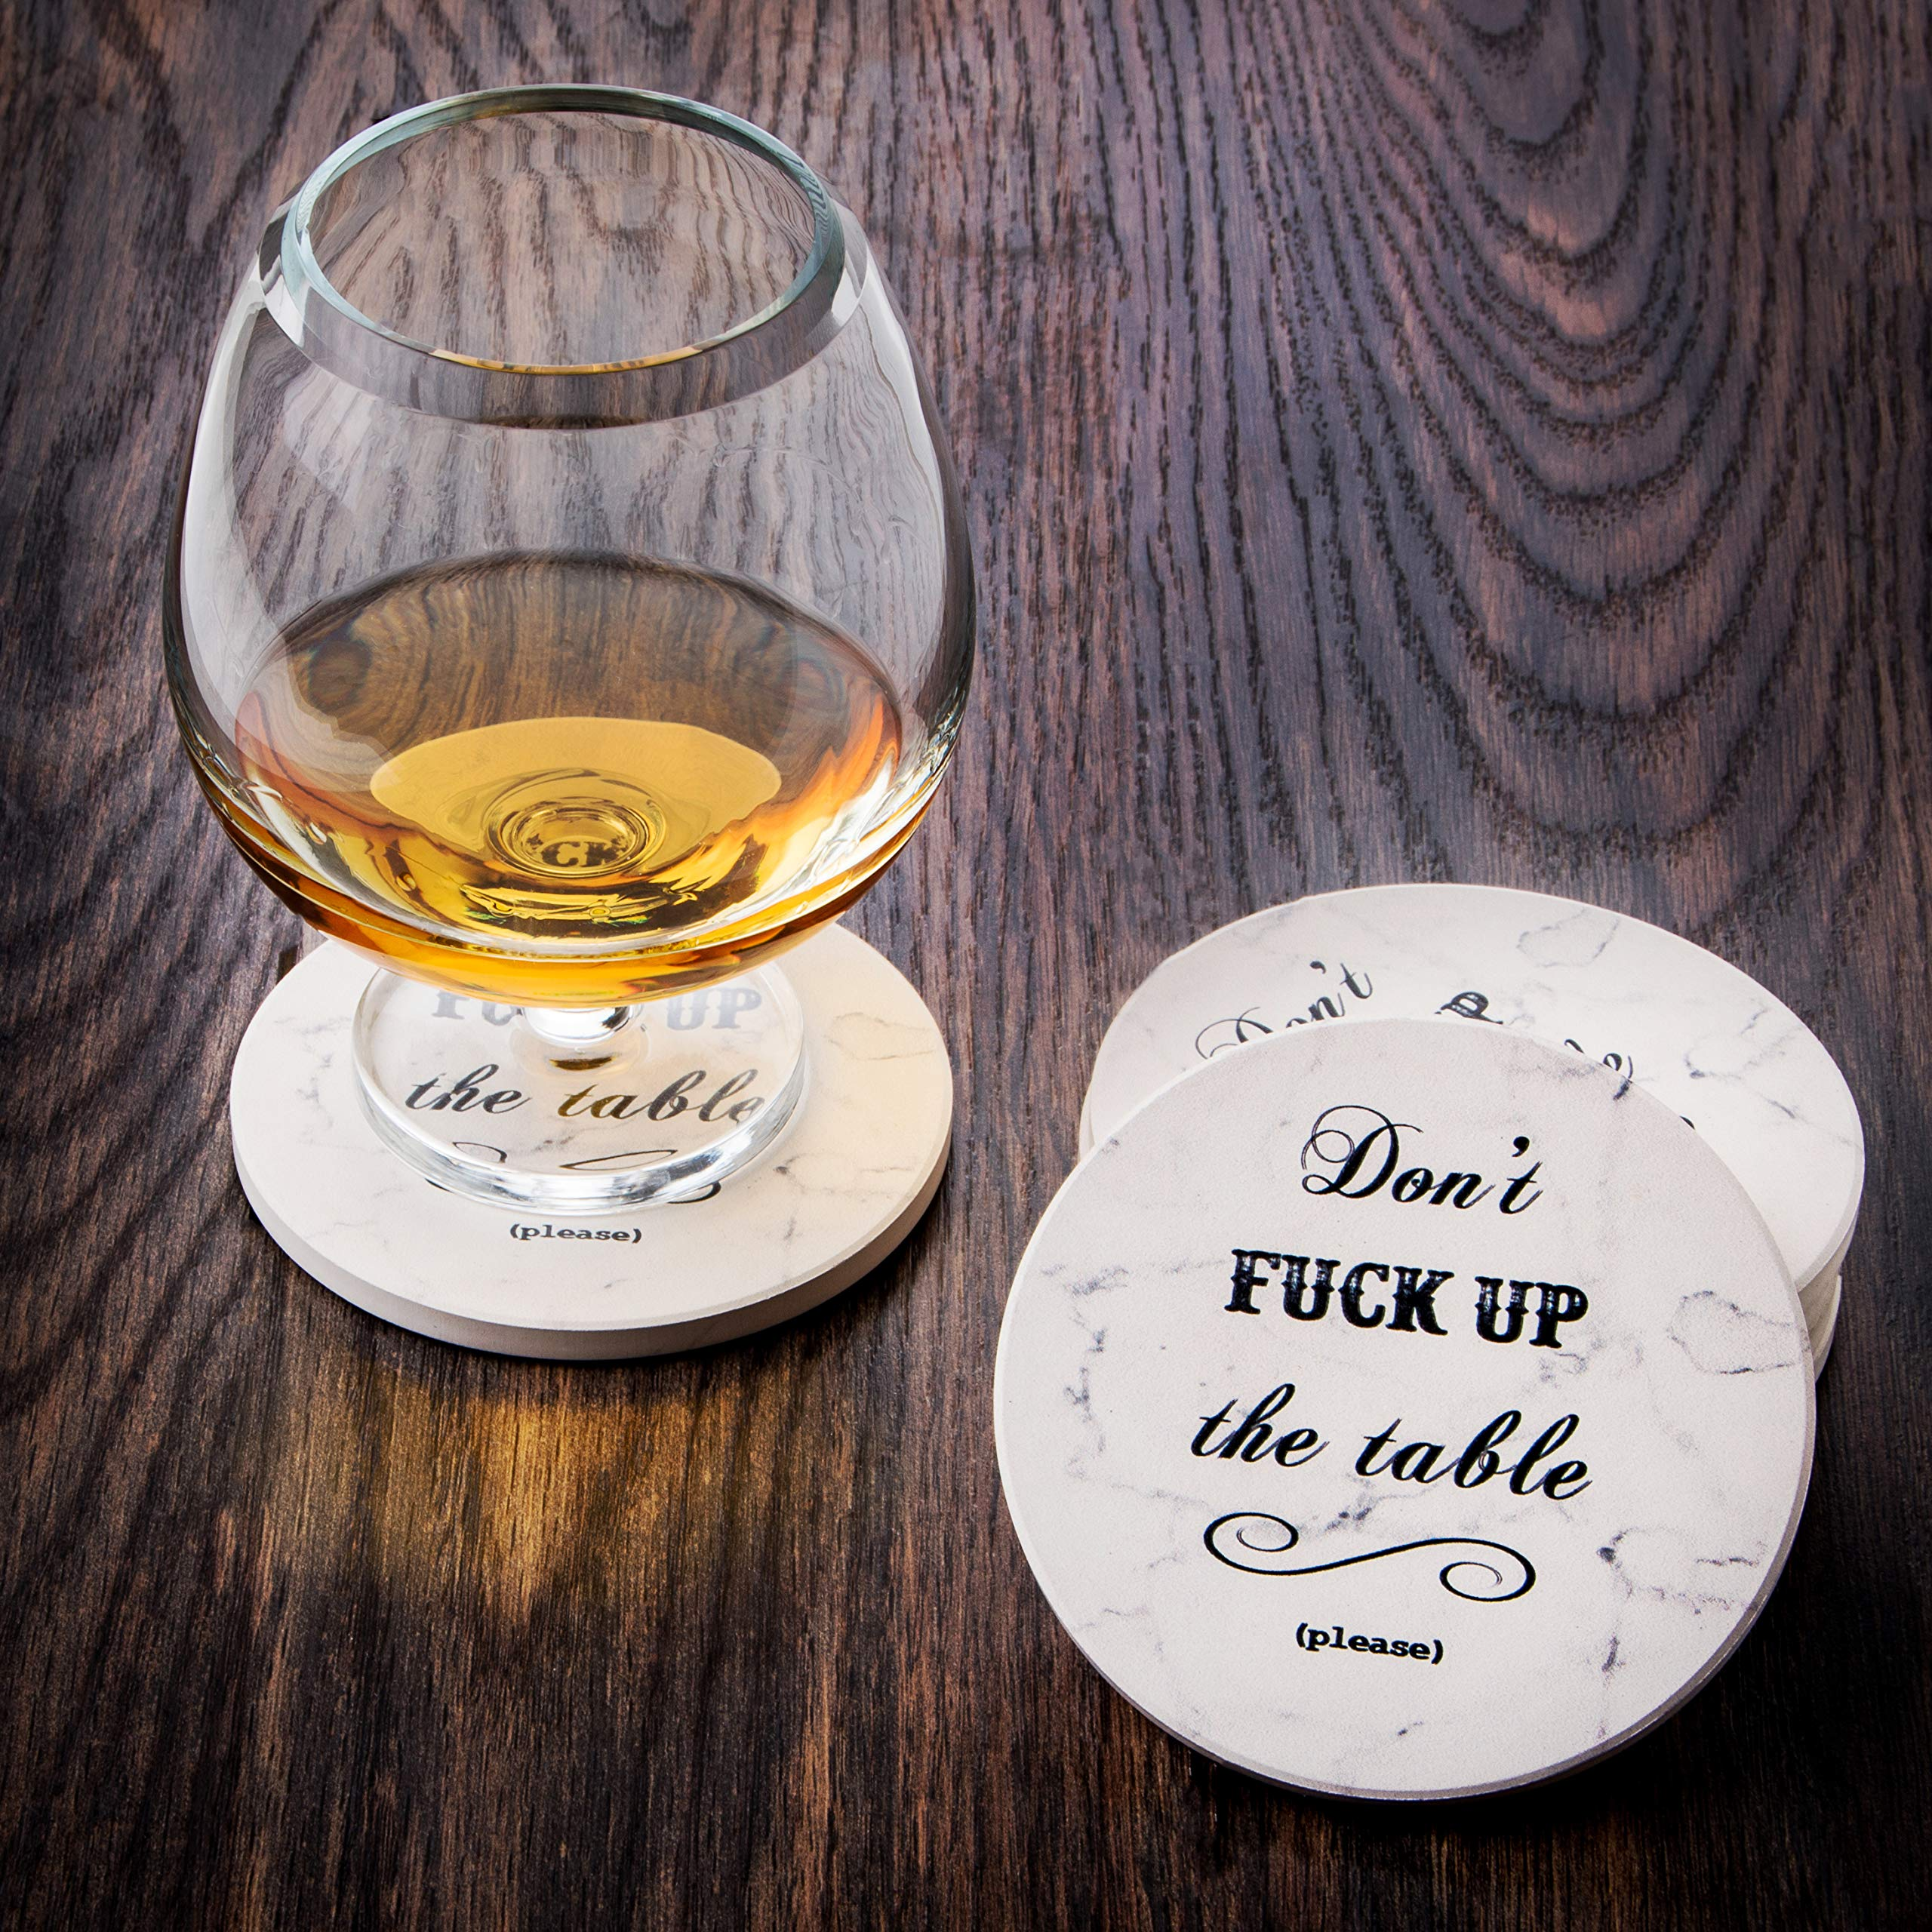 Urban Mosh Coasters for Drinks - Funny Absorbent Ceramic Stone Set of 6 White Marble Style with Cork Backing and Holder Included, Protect Your Furniture From Spills, Scratches, Water Rings and Damage by Urban Mosh (Image #5)